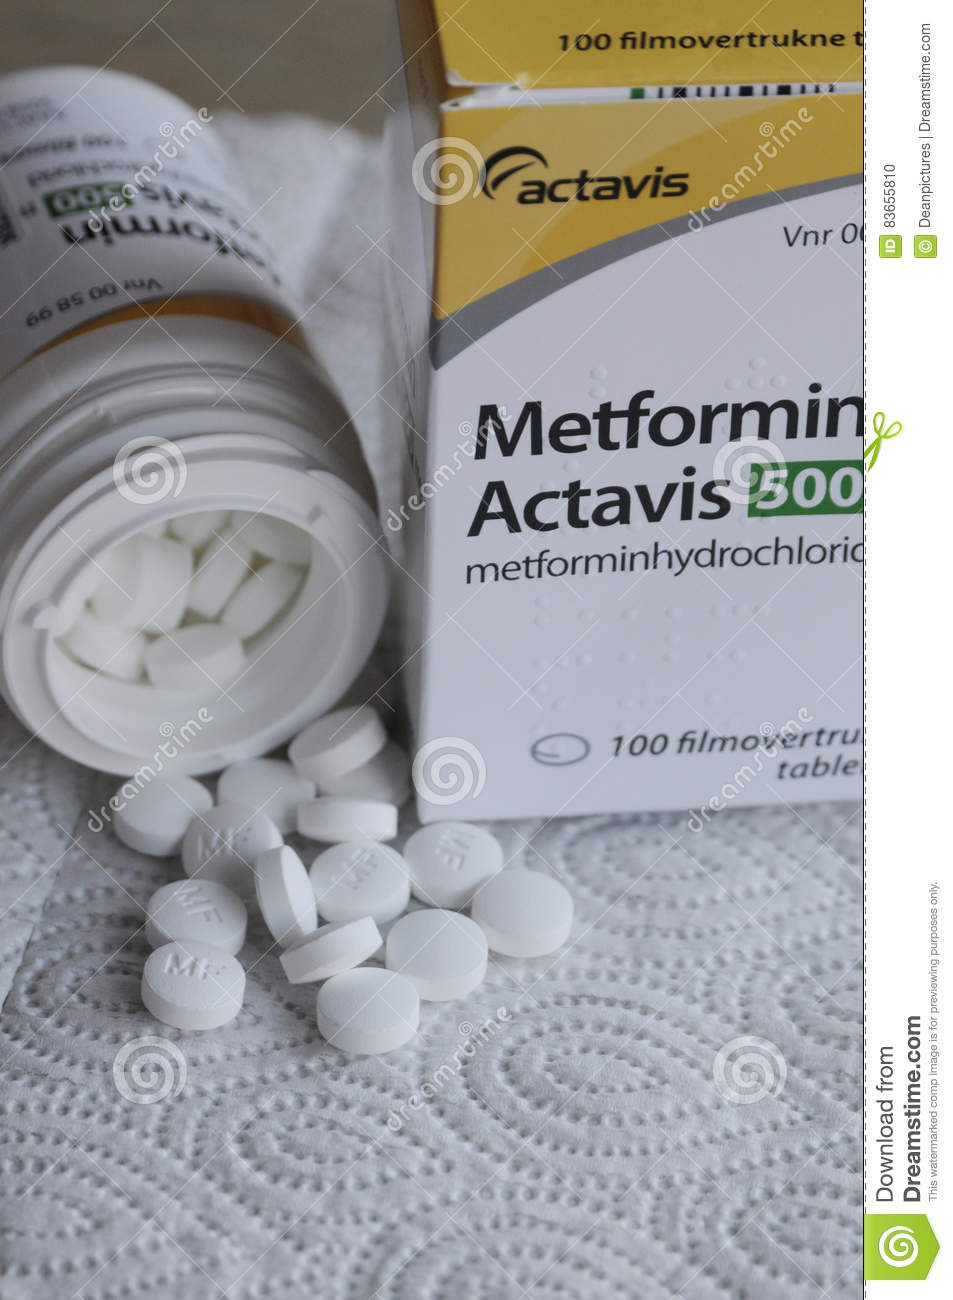 Metformin on line pricing in canada